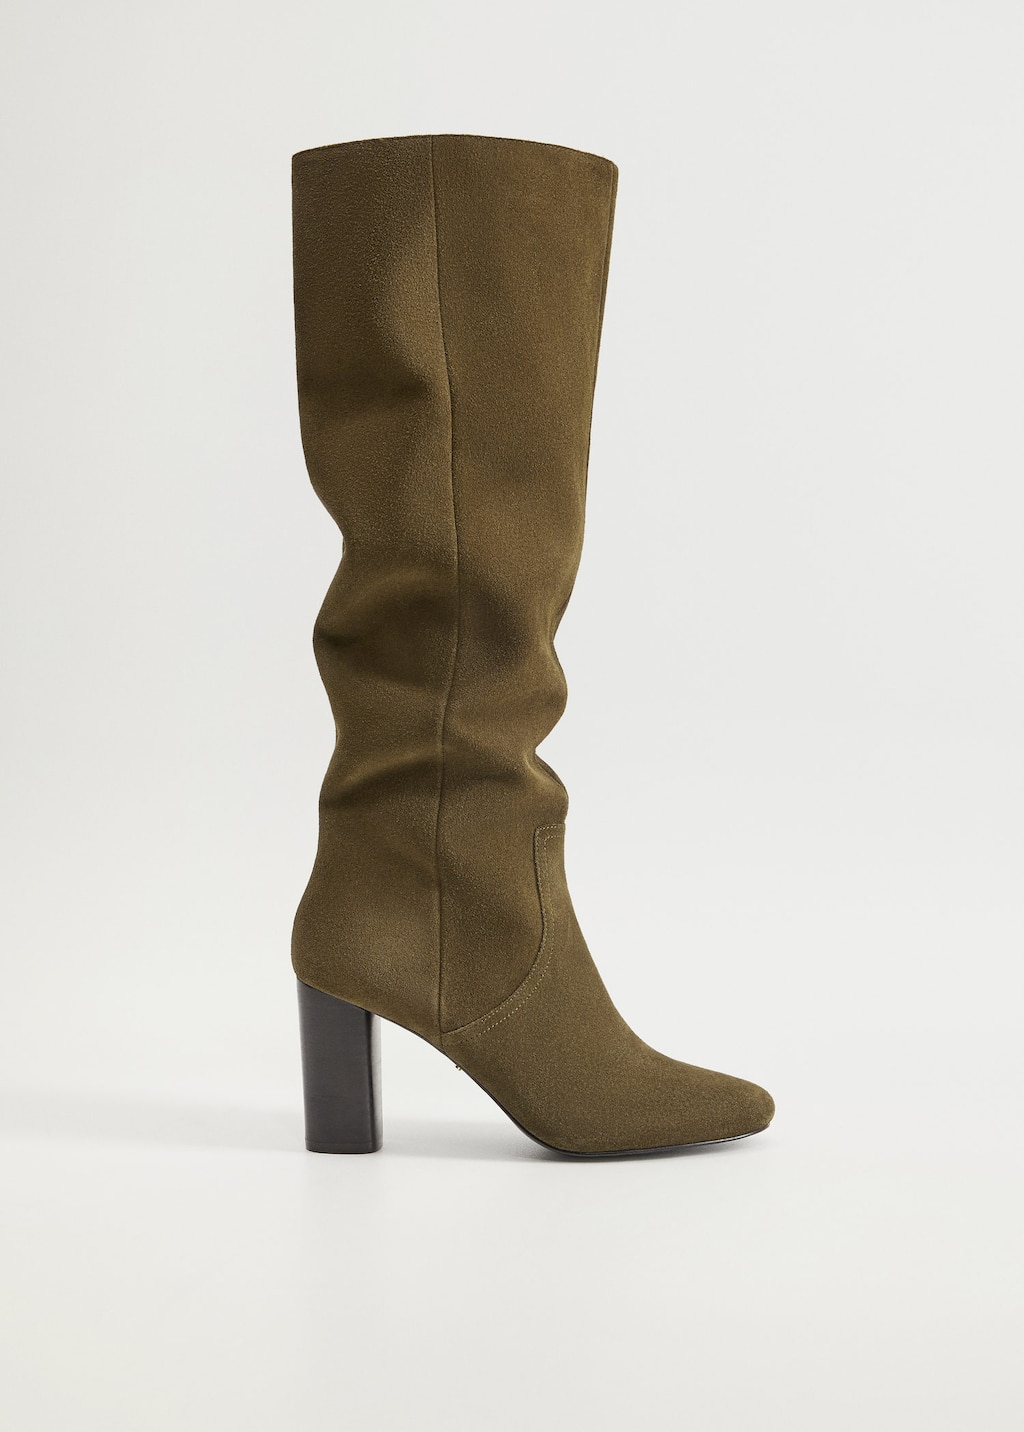 High-leg suede boots - Article without model